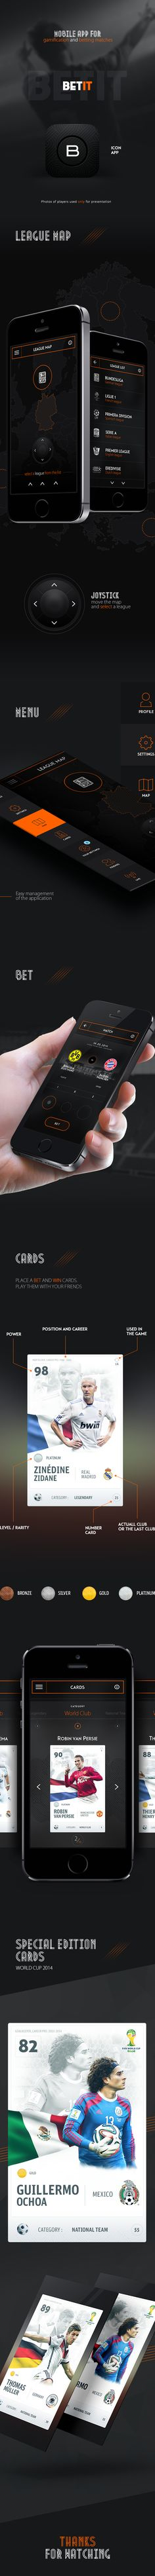 Unique App Design, Bet It #App #Design (http://www.pinterest.com/aldenchong/)